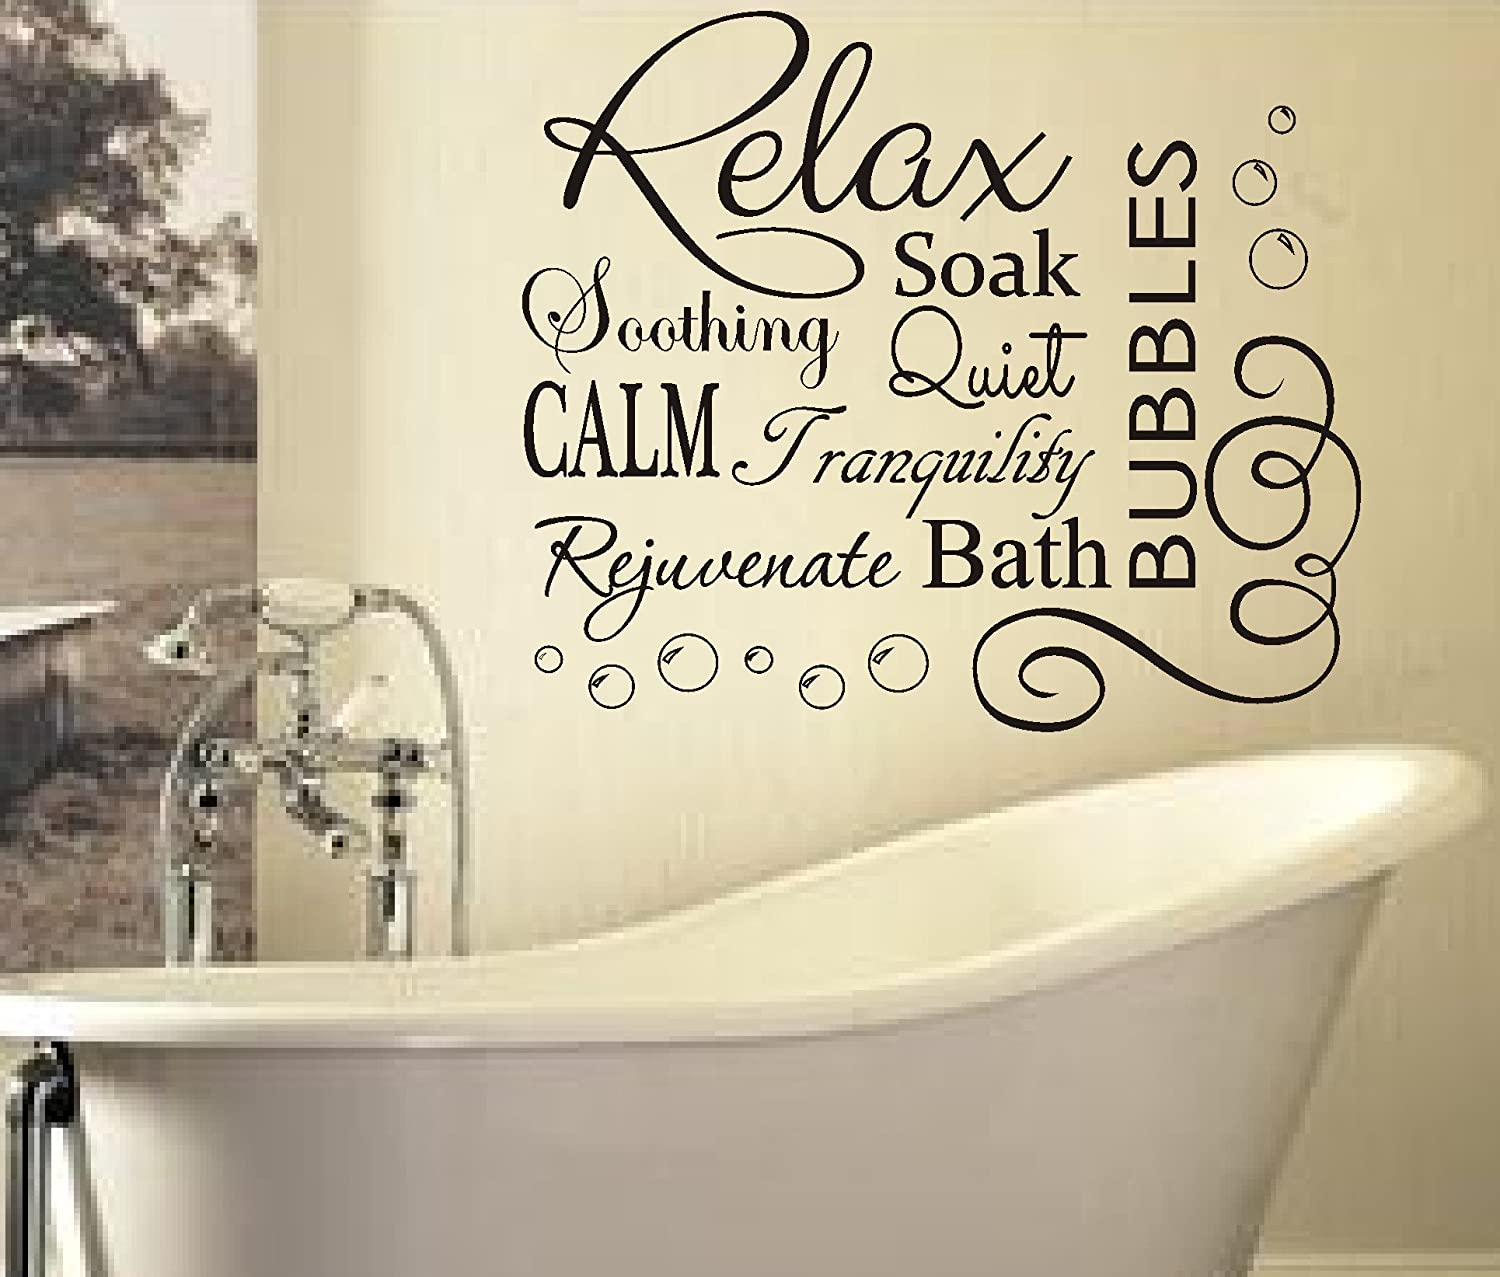 Bathroom wall art images galleries for Bathroom wall decor quotes